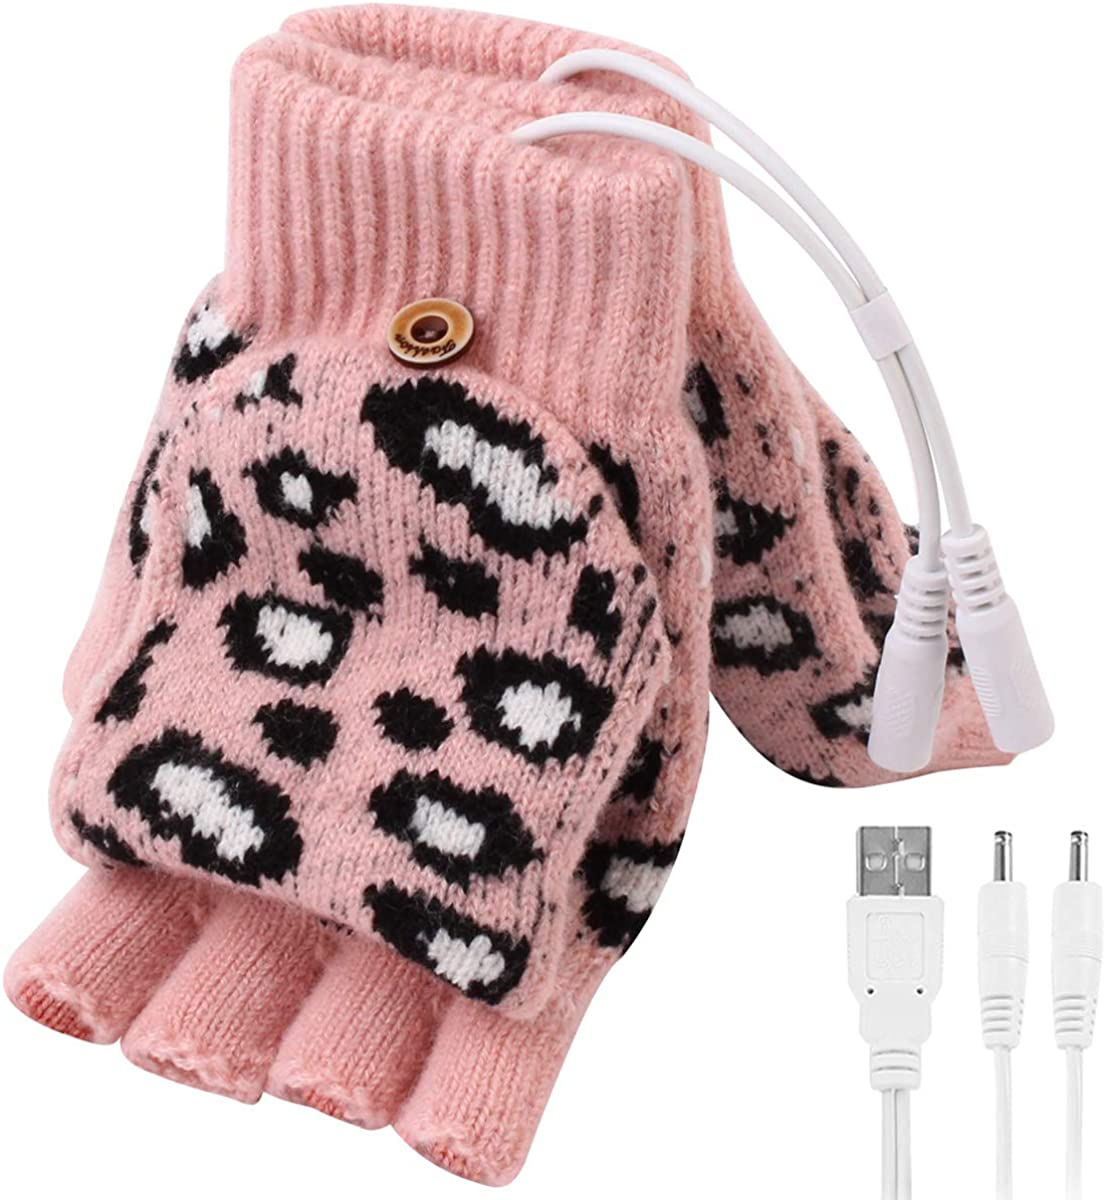 DaMohony Women USB Heated Gloves, Winter Half Finger Heated Gloves with 3 Temperature Level for Typing Hiking Cycling